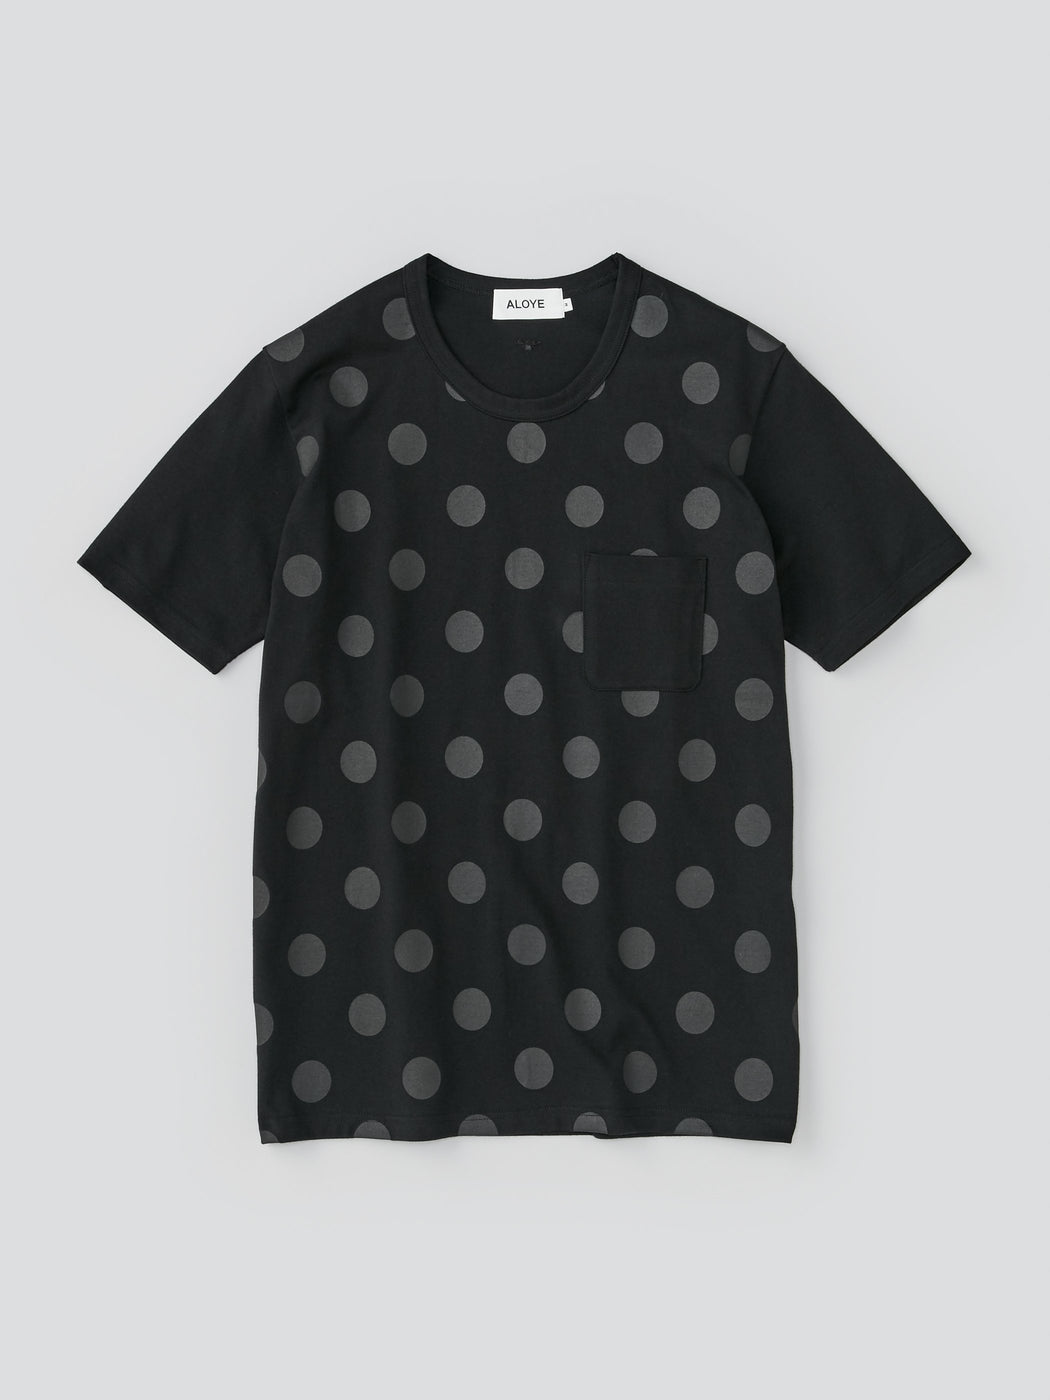 ALOYE Dots & Stripes Men's Short Sleeve T-shirt Black-Black Dot Front